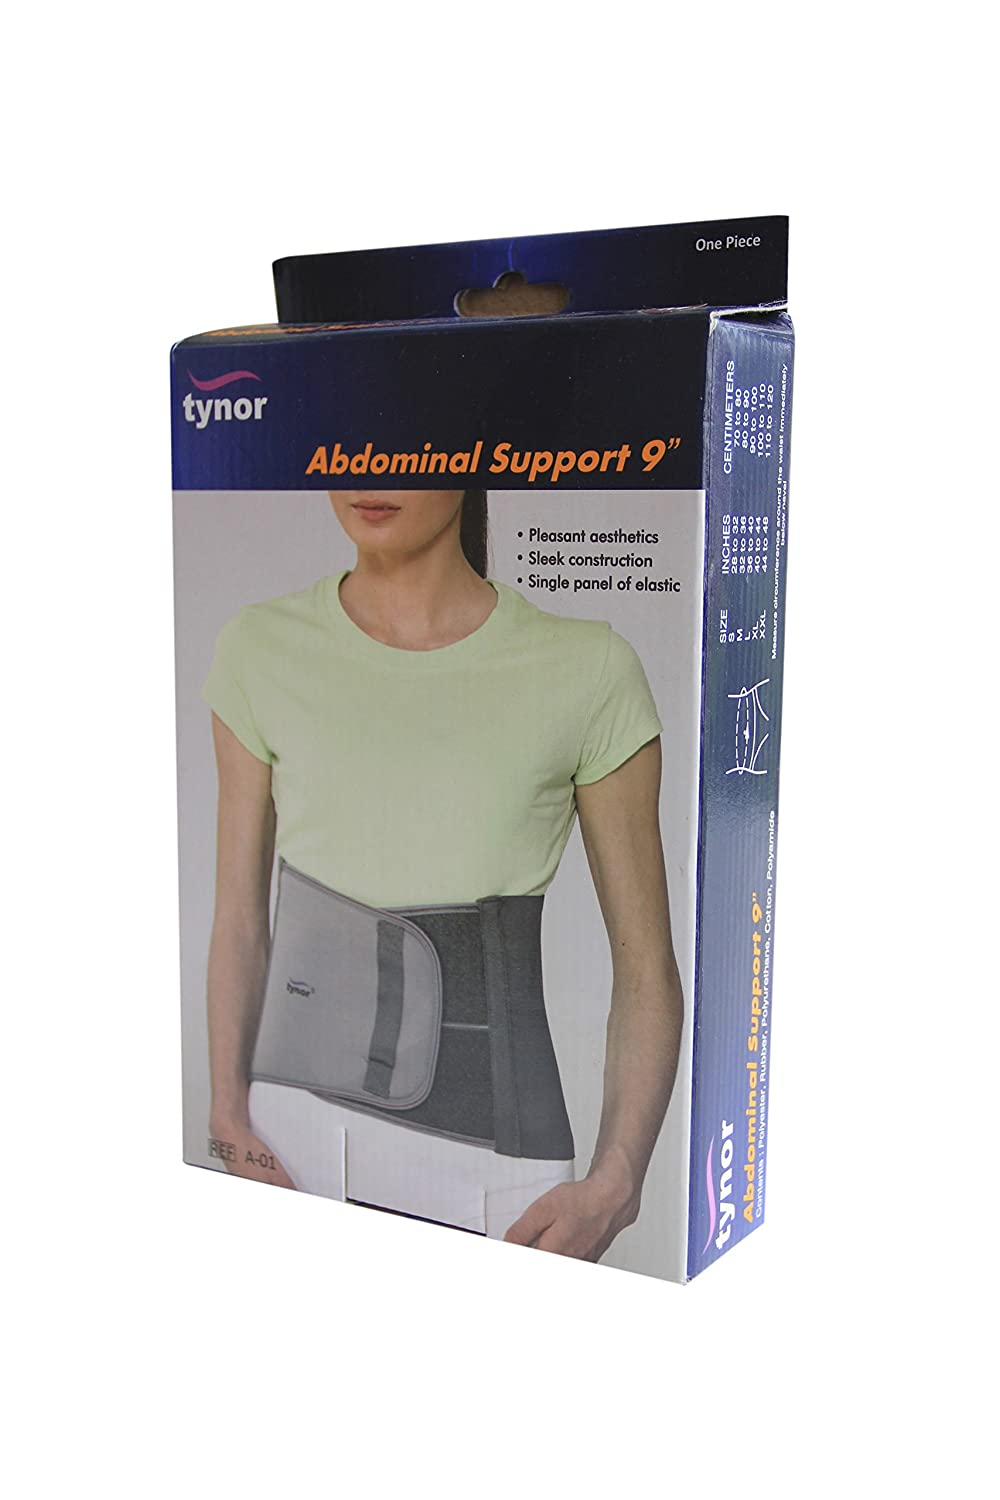 f0fe3dc01 Buy Tynor Abdominal Support 9 For Post Operative  Post Pregnancy - Large  (36-40 inches) Online at Low Prices in India - Amazon.in